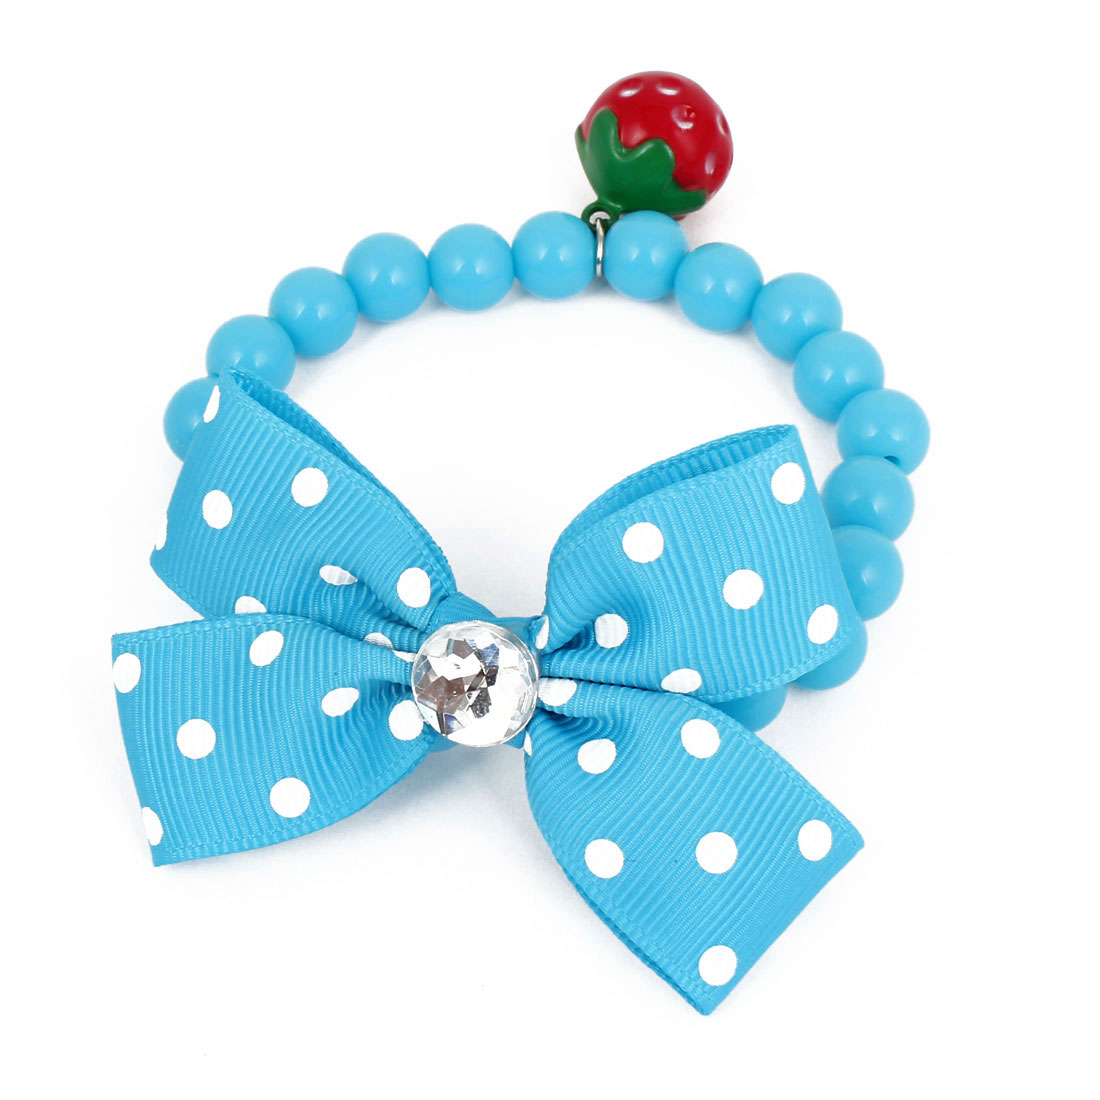 Metal Bell Pendant Bowtie Accent Pet Dog Plastic Round Beads Collar Necklace Blue XS